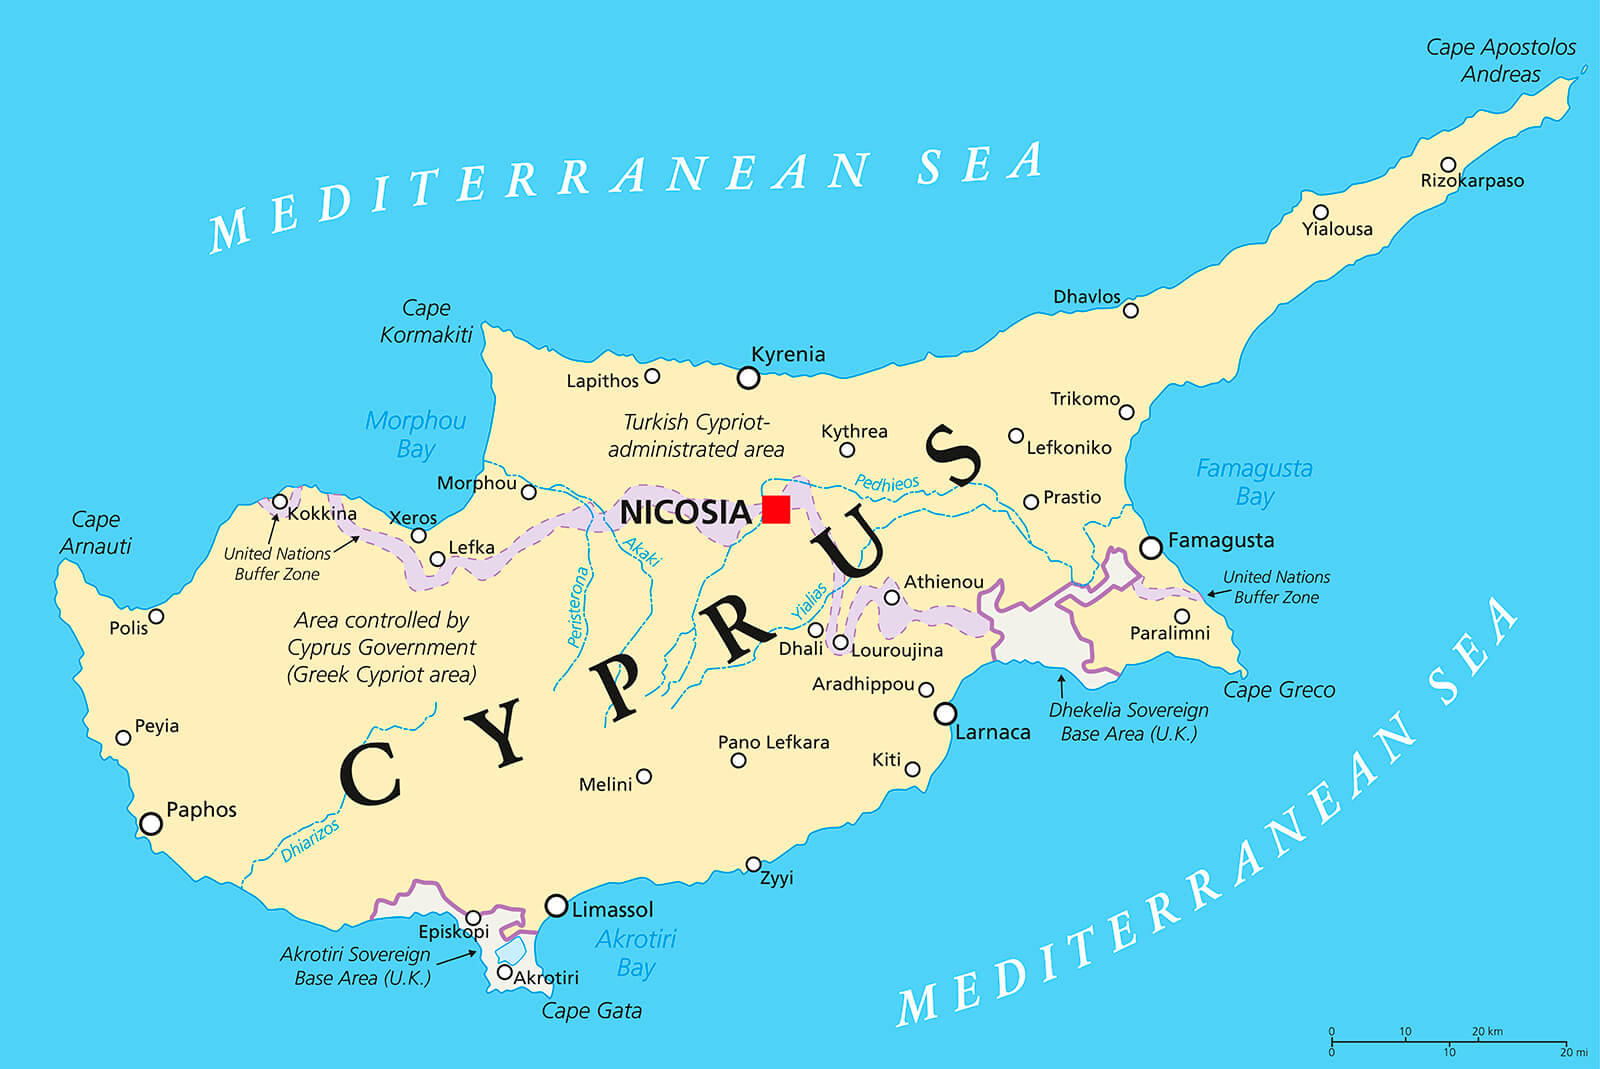 This is the map of Cyprus shown in slightly larger size. Here you will see the area to the North of the 'United Nations Buffer Zone' line is occupied by Turkey. Also, the six main districts of Cyprus being Limassol, Larnaca, Nicosia, Paphos, Famagusta, and Kyrenia.